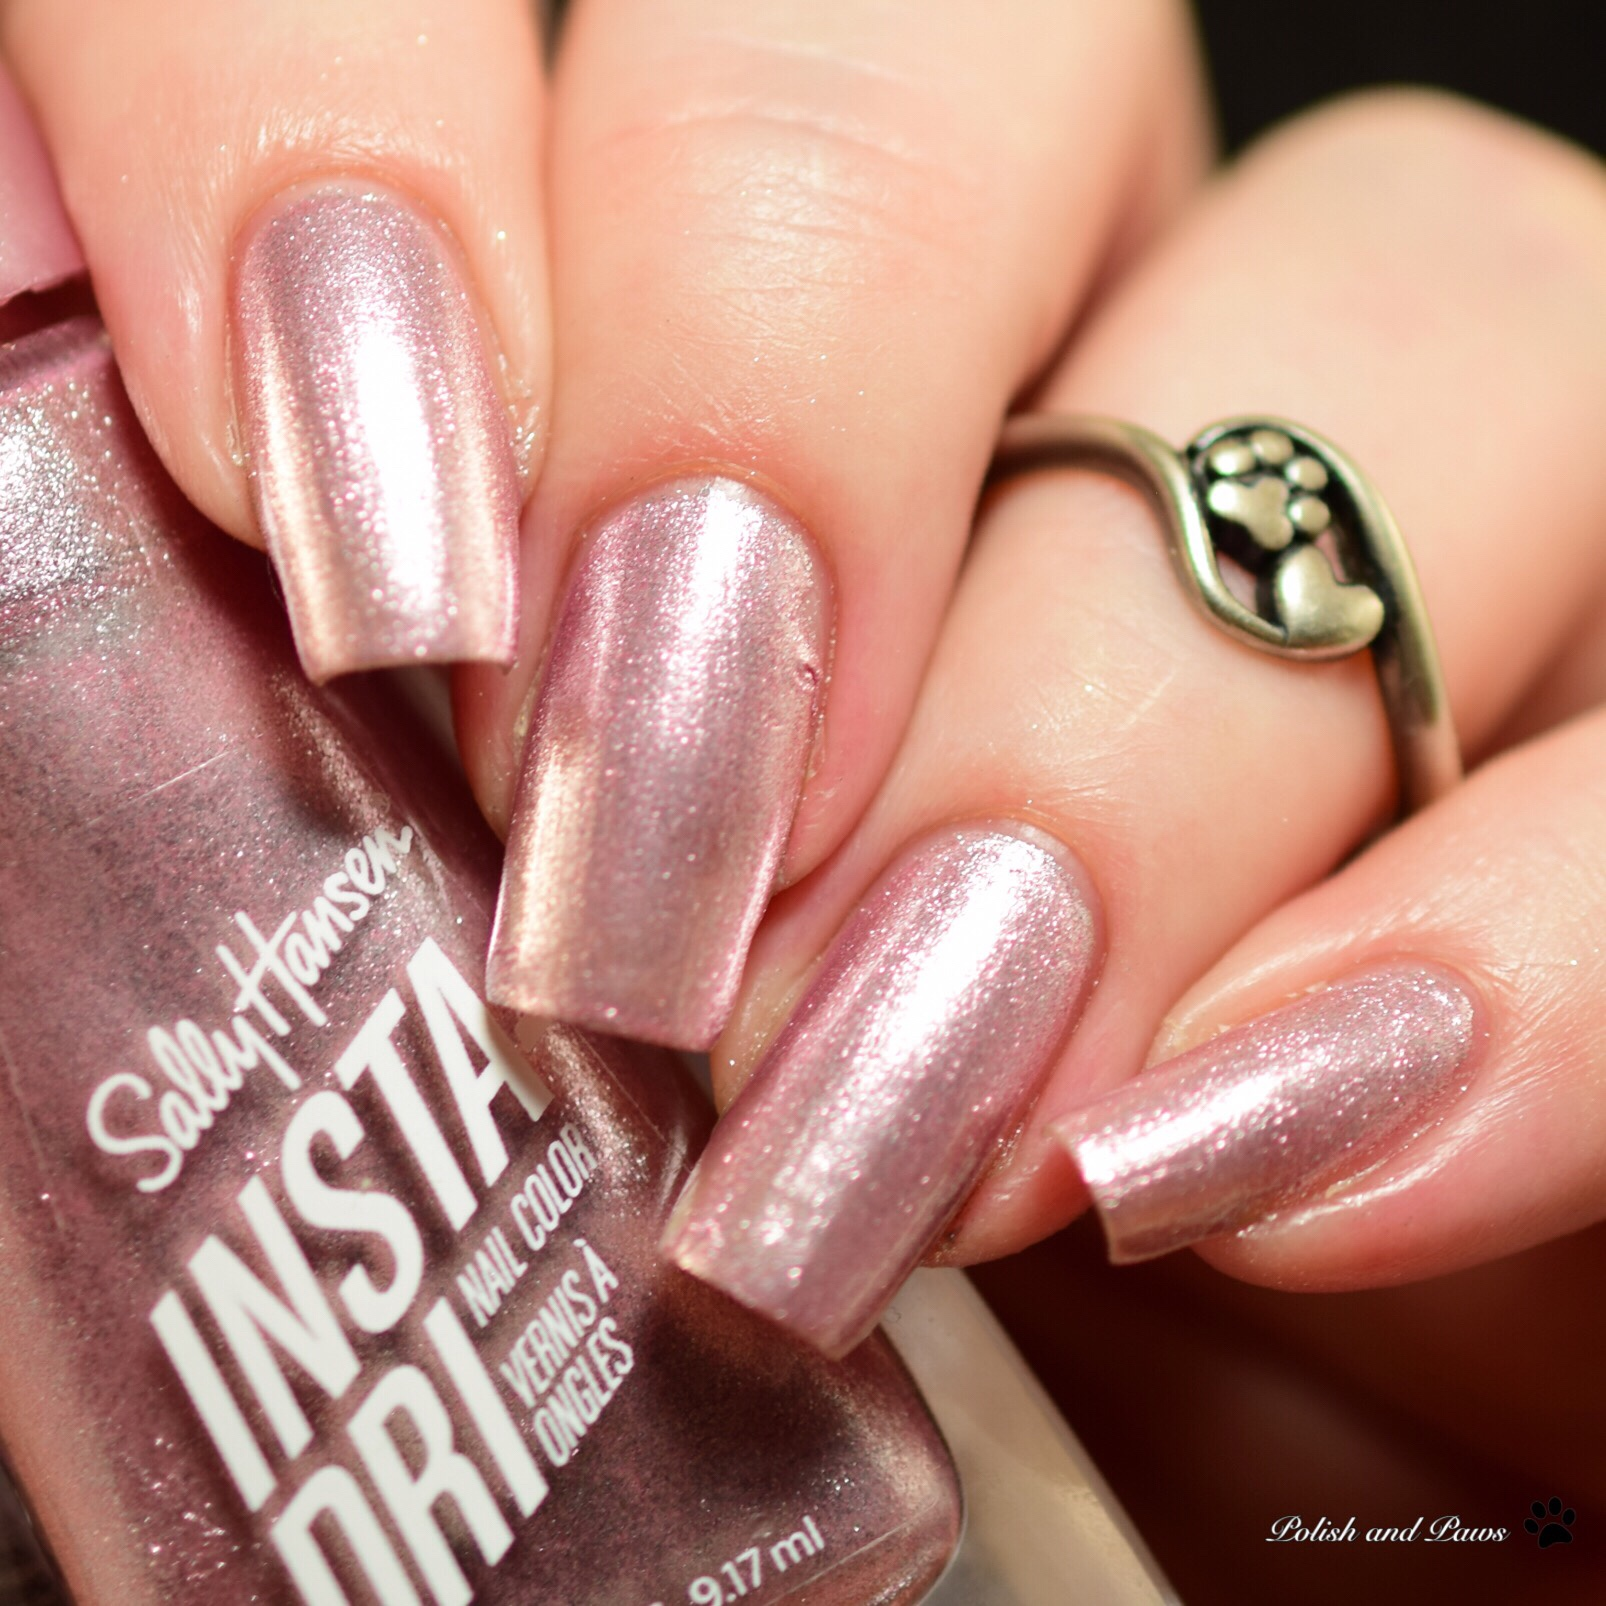 Sally Hansen Insta-Dri Petal to The Metal